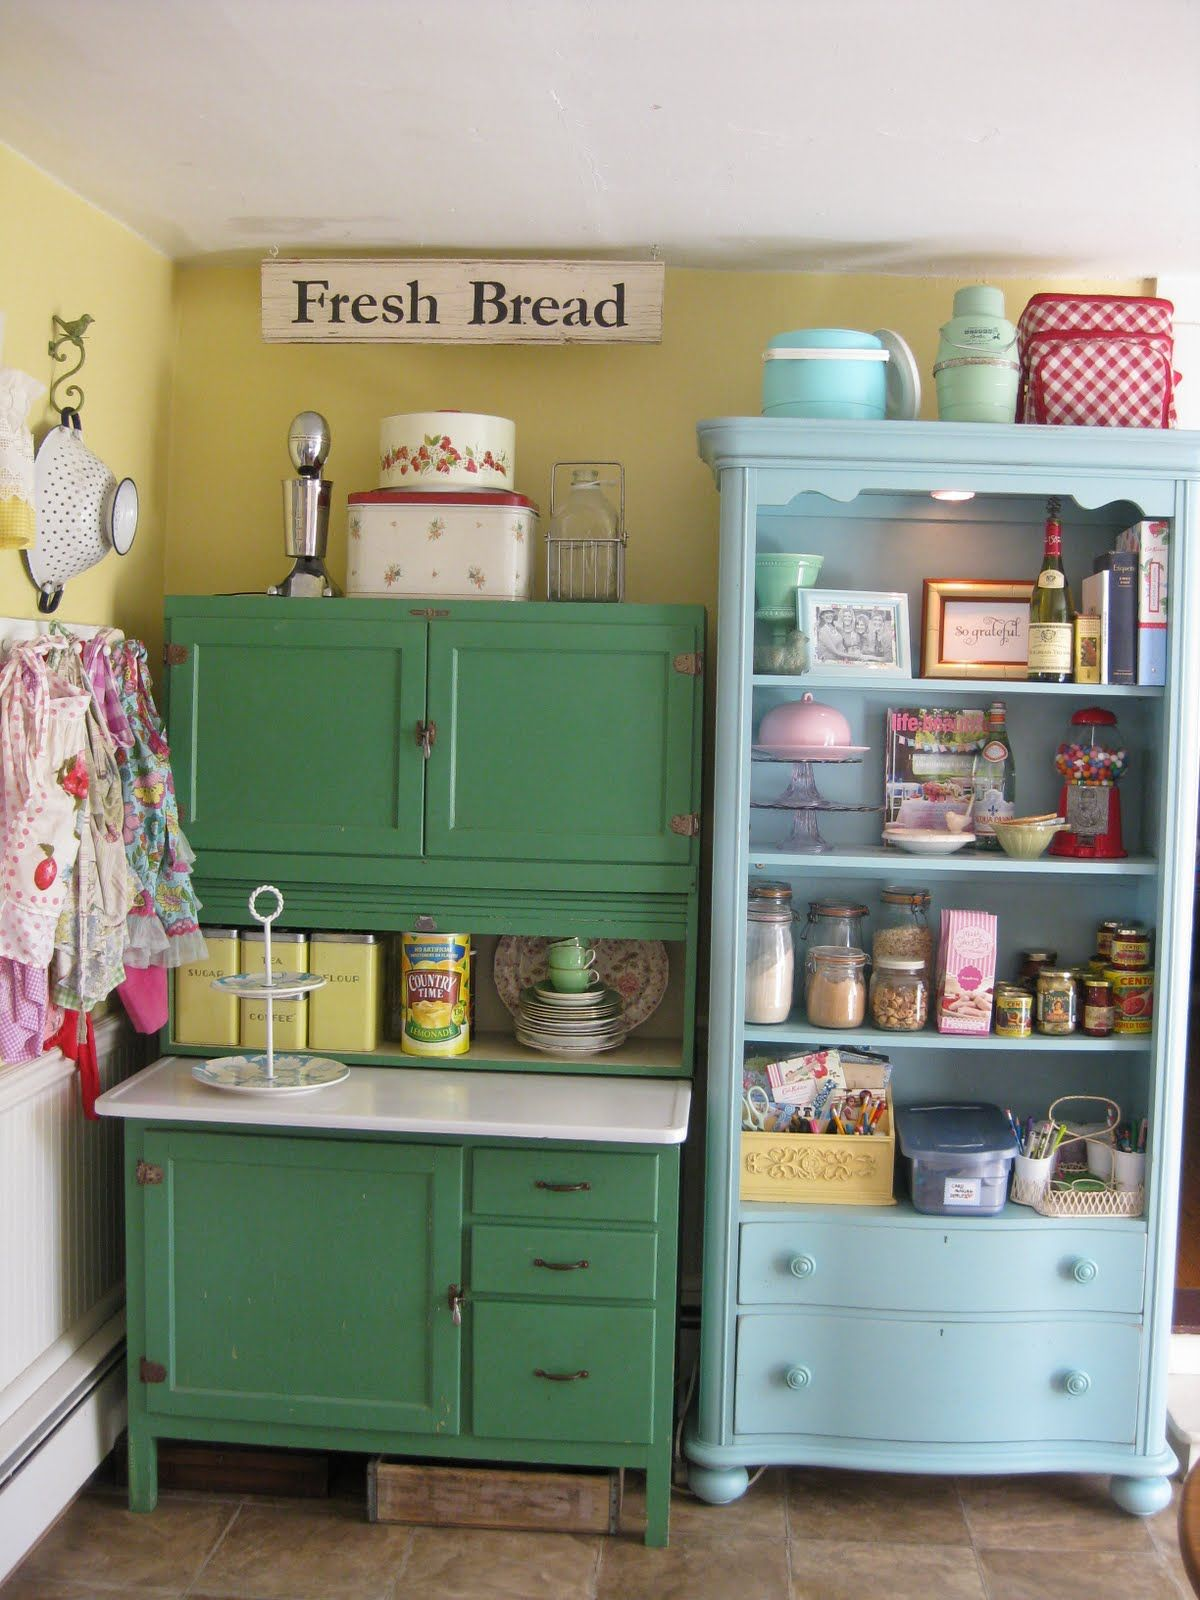 Scenic Green And Blue Vintage Kitchen Cabinet Storage Also Open Racks As Inspiring Vintage